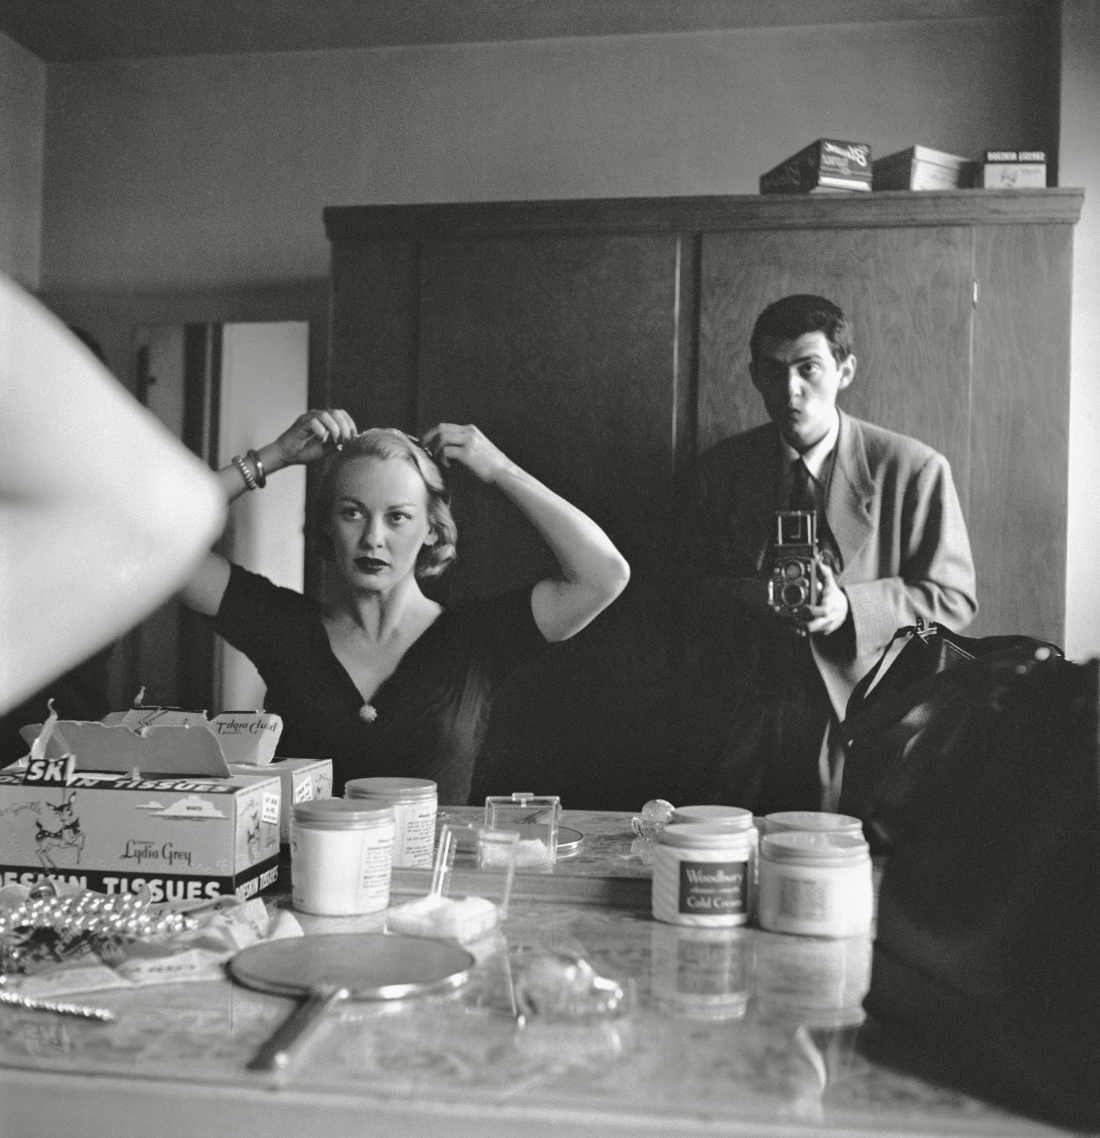 """Stanley Kubrick, Stanley Kubrick with Faye Emerson from """"Faye Emerson: Young Lady in a Hurry,"""" 1950. Copyright: © SK Film Archives/Museum of the City of New York"""